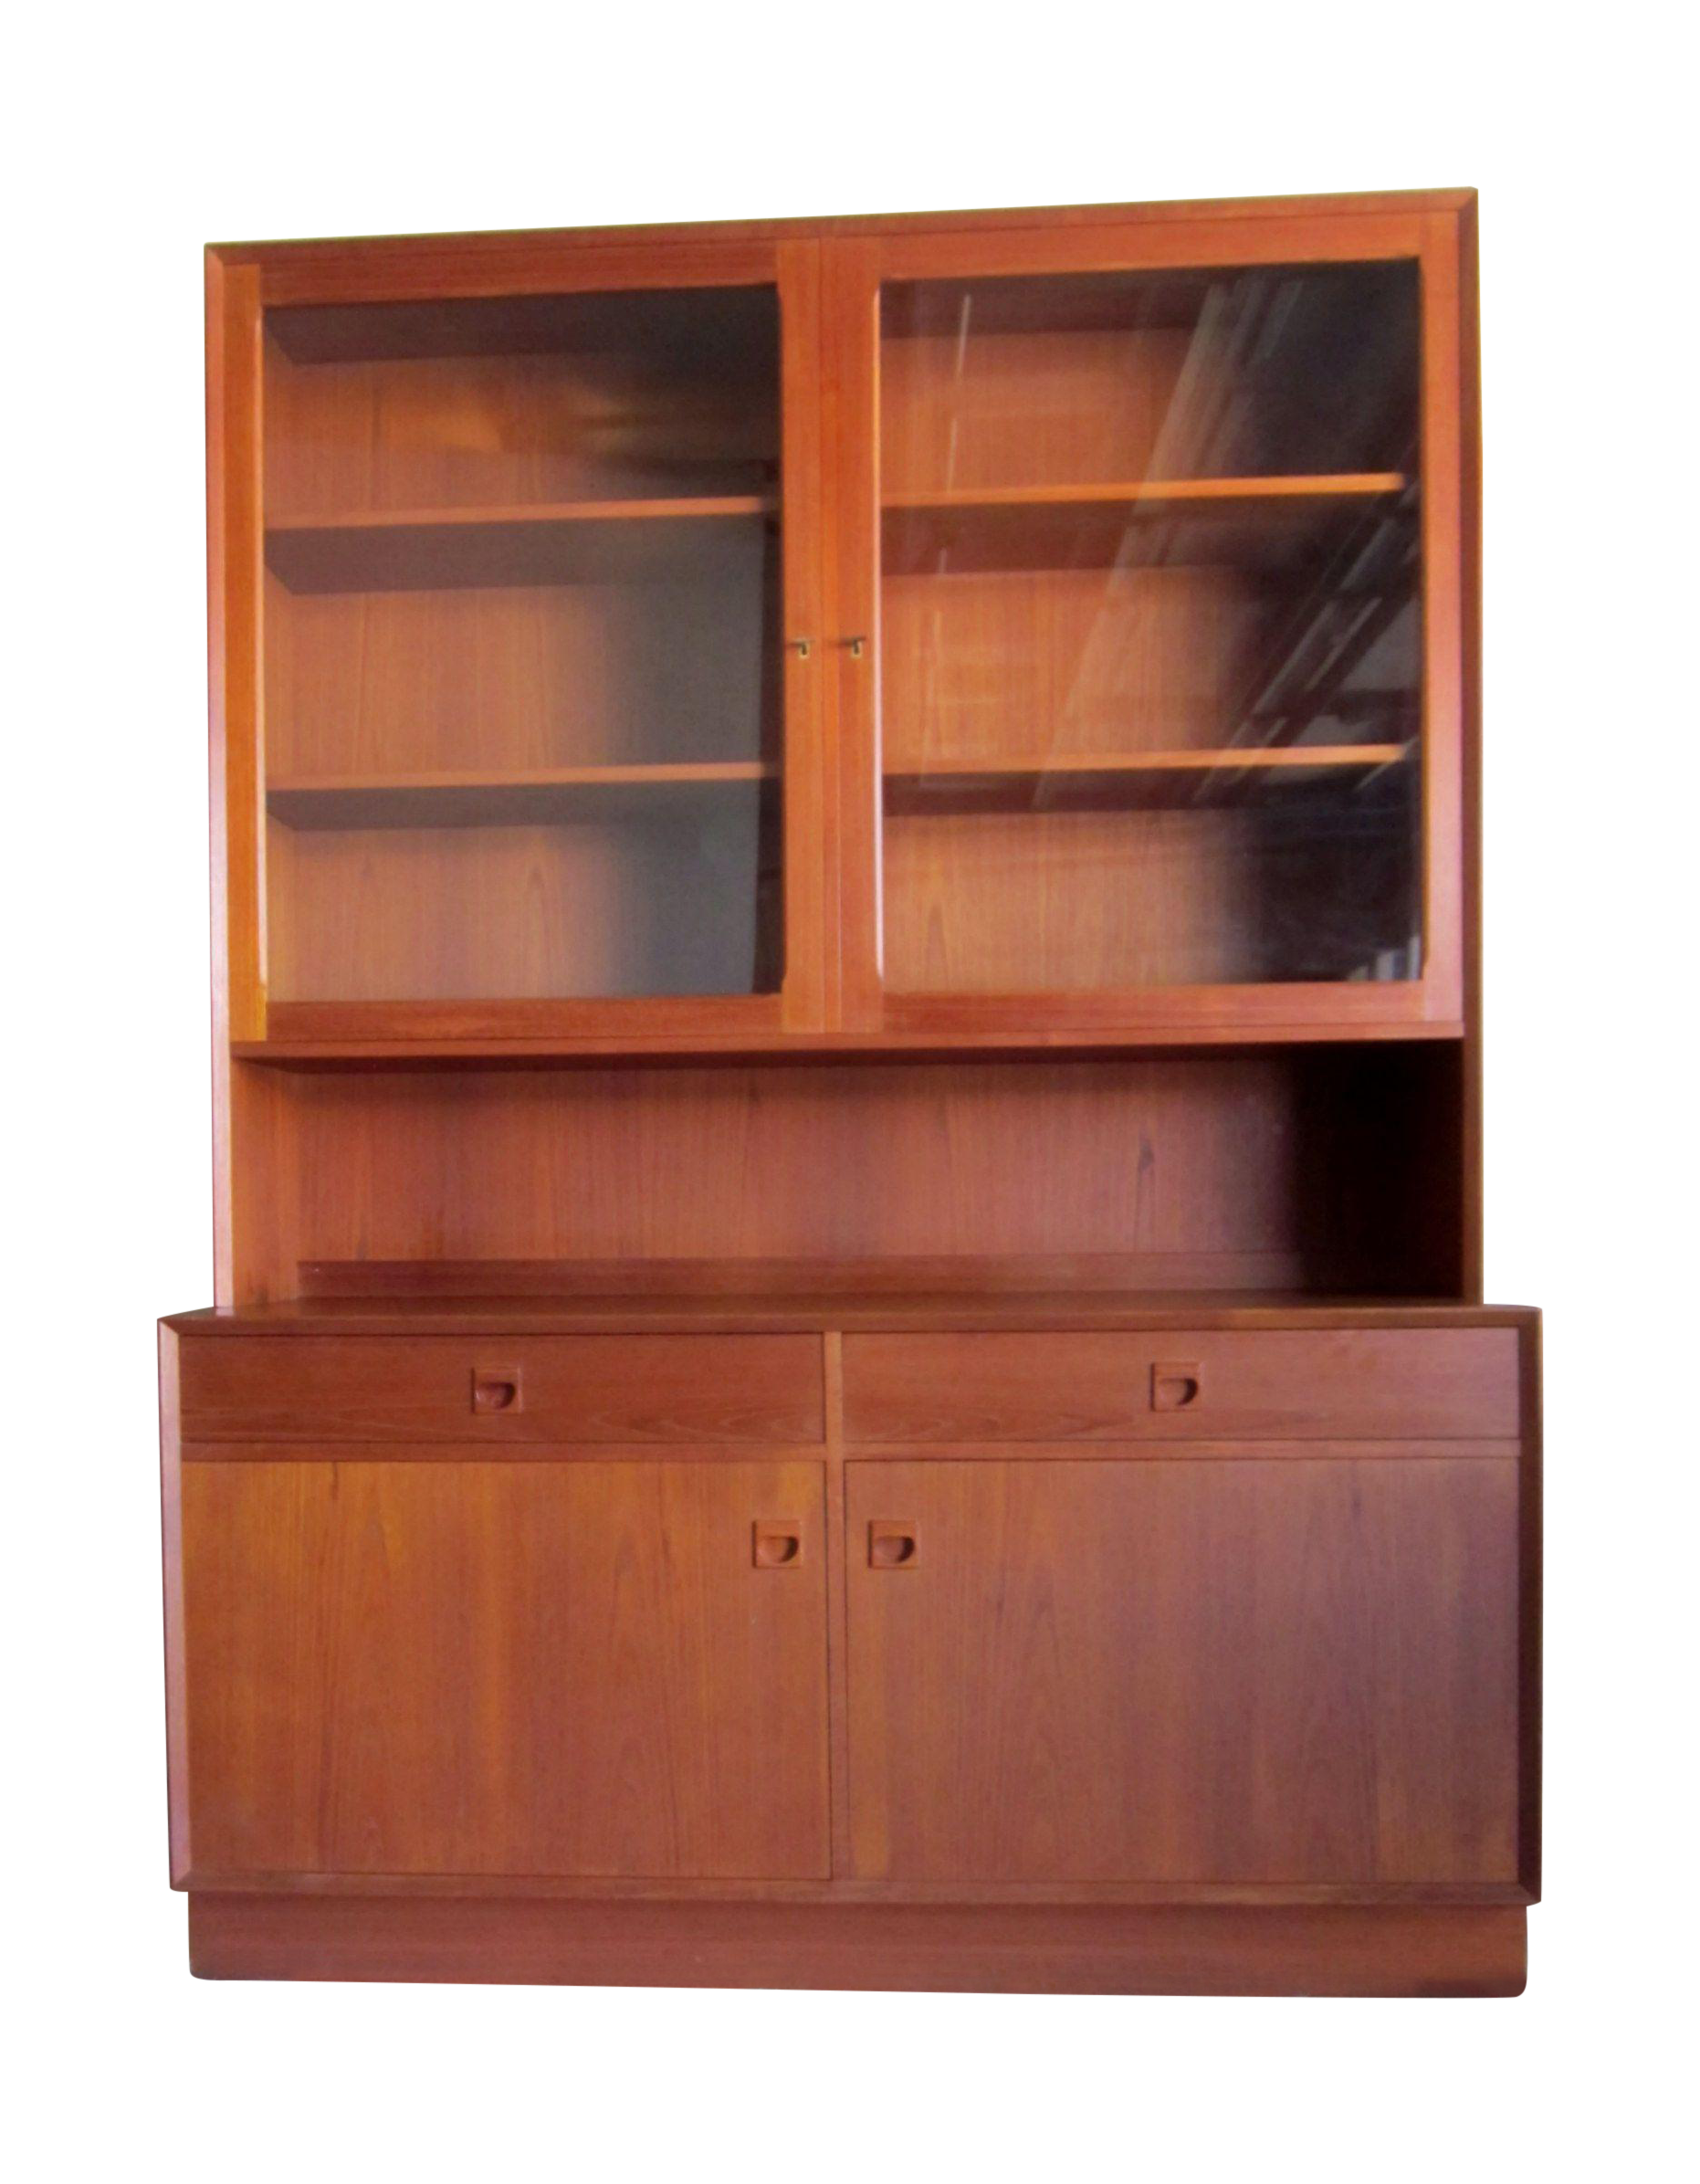 Teak China Cabinet Hutch Bookshelf Credenza on Chairish ...